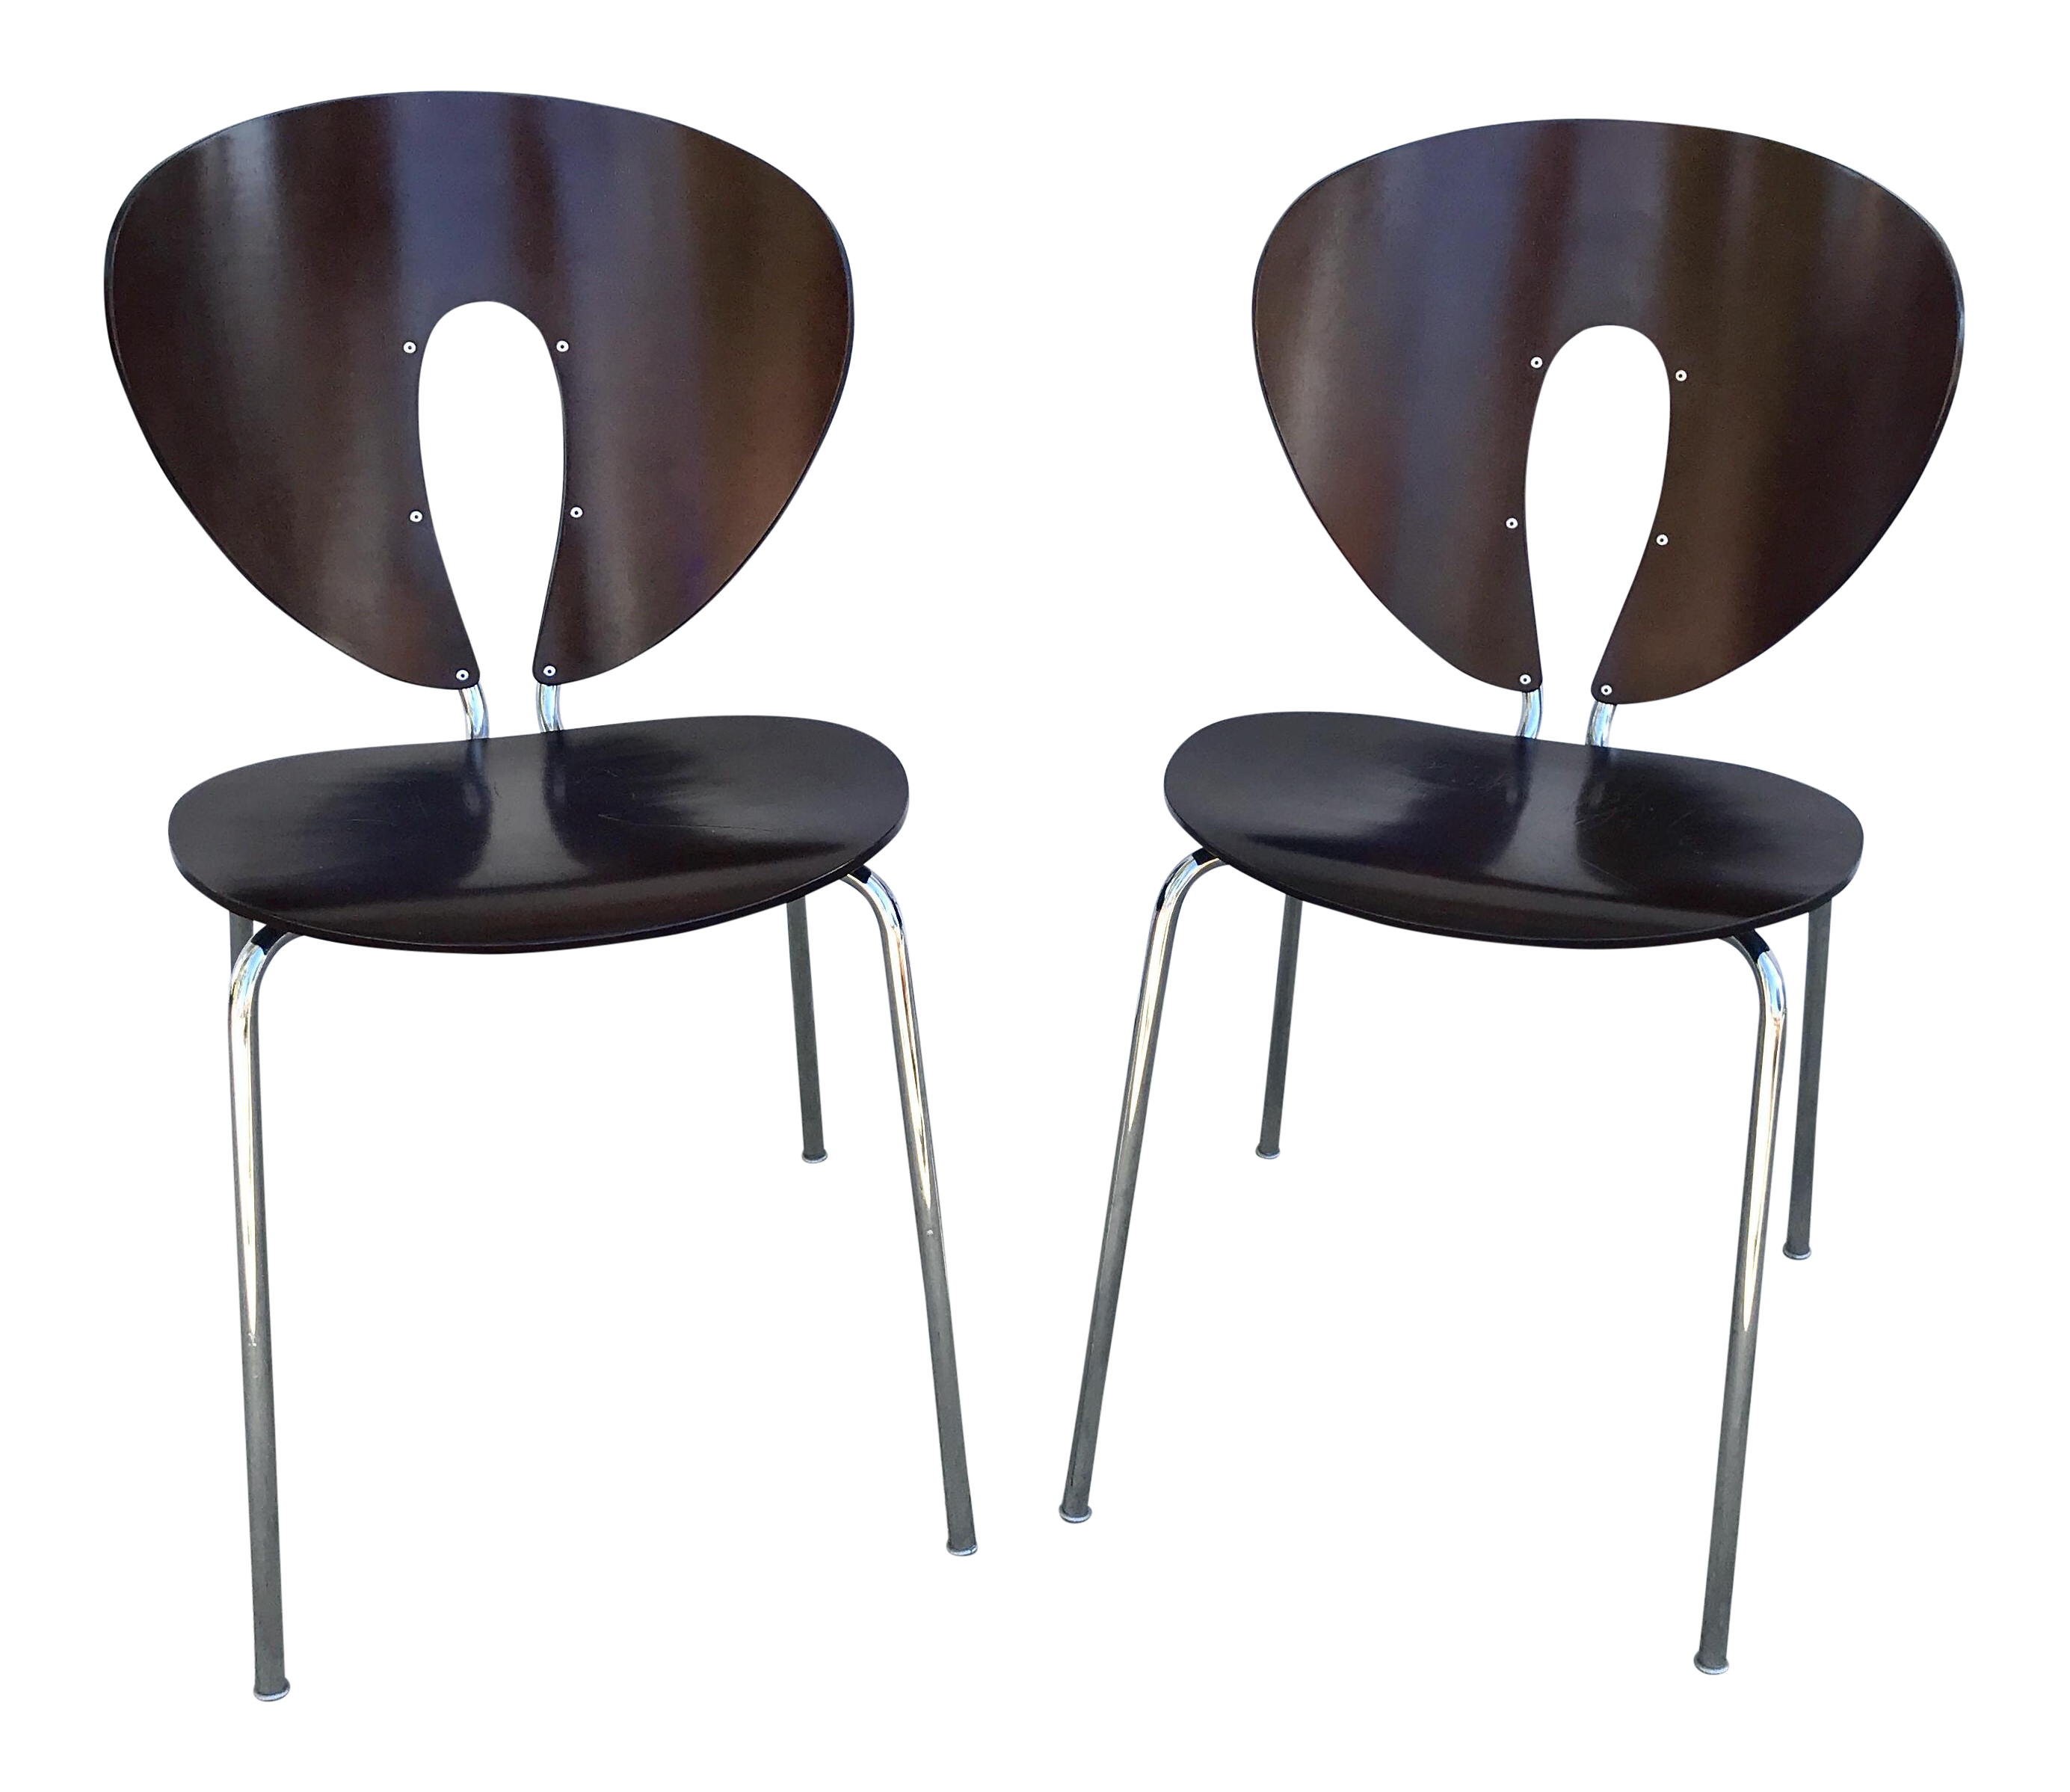 Jesus Gasca For STUA Brown Globus Chairs   A Pair